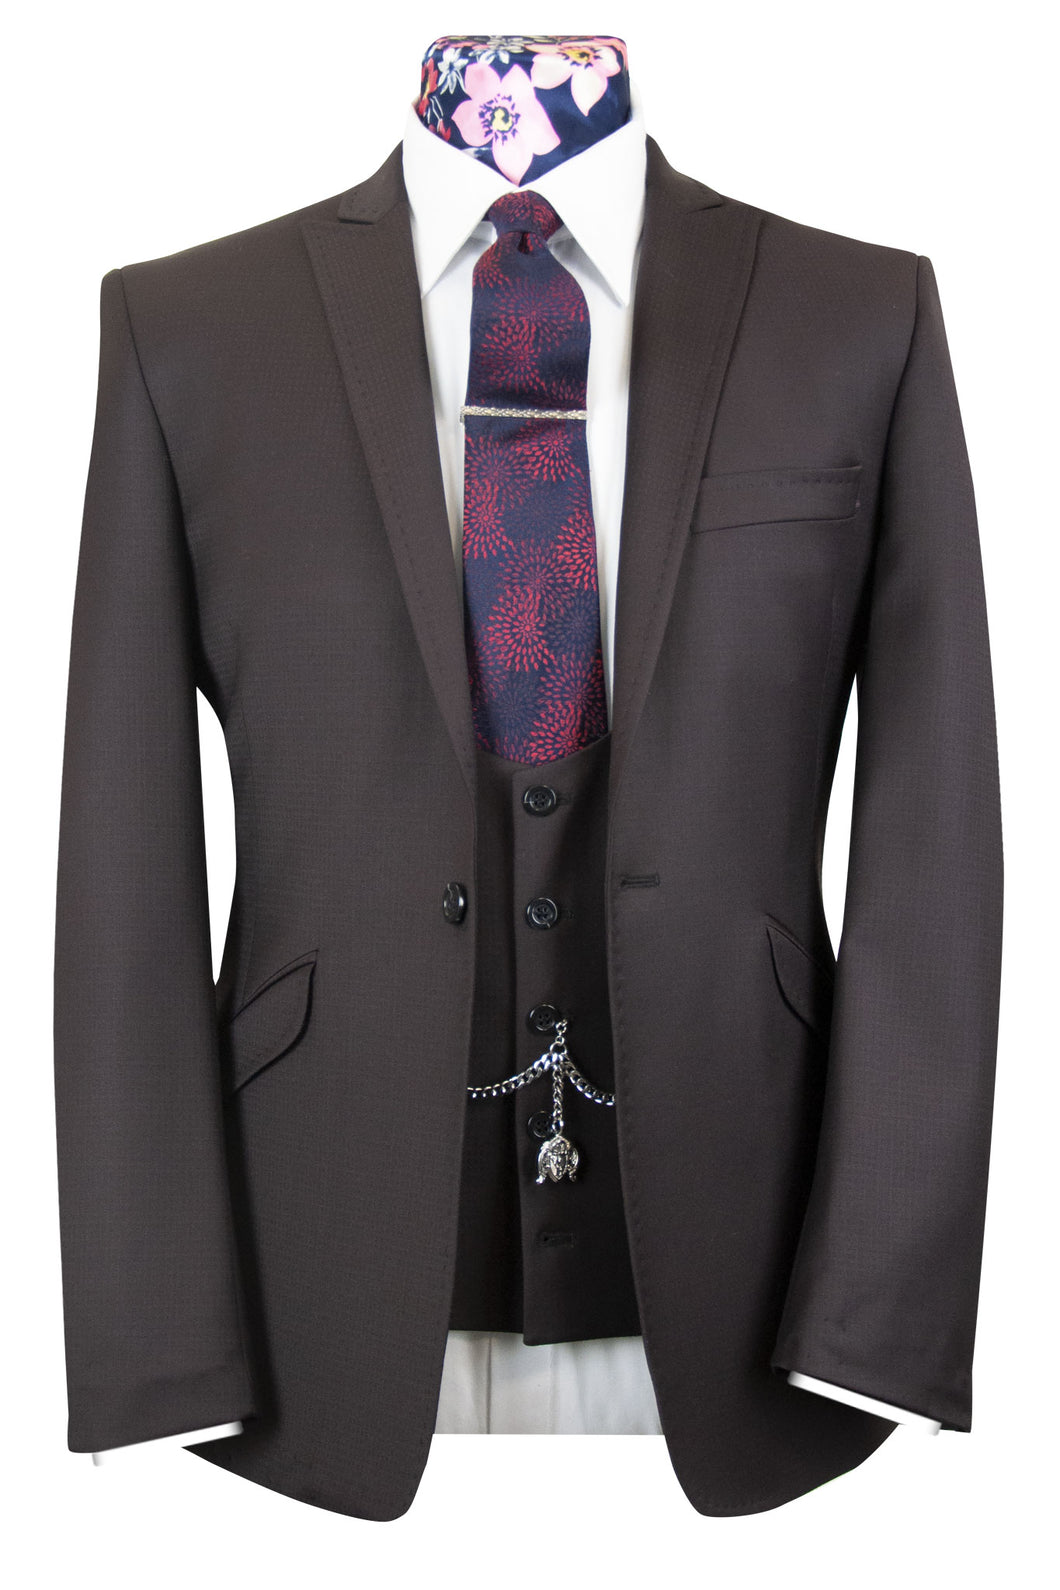 The Chamberlain Dark Mahogany Check Suit